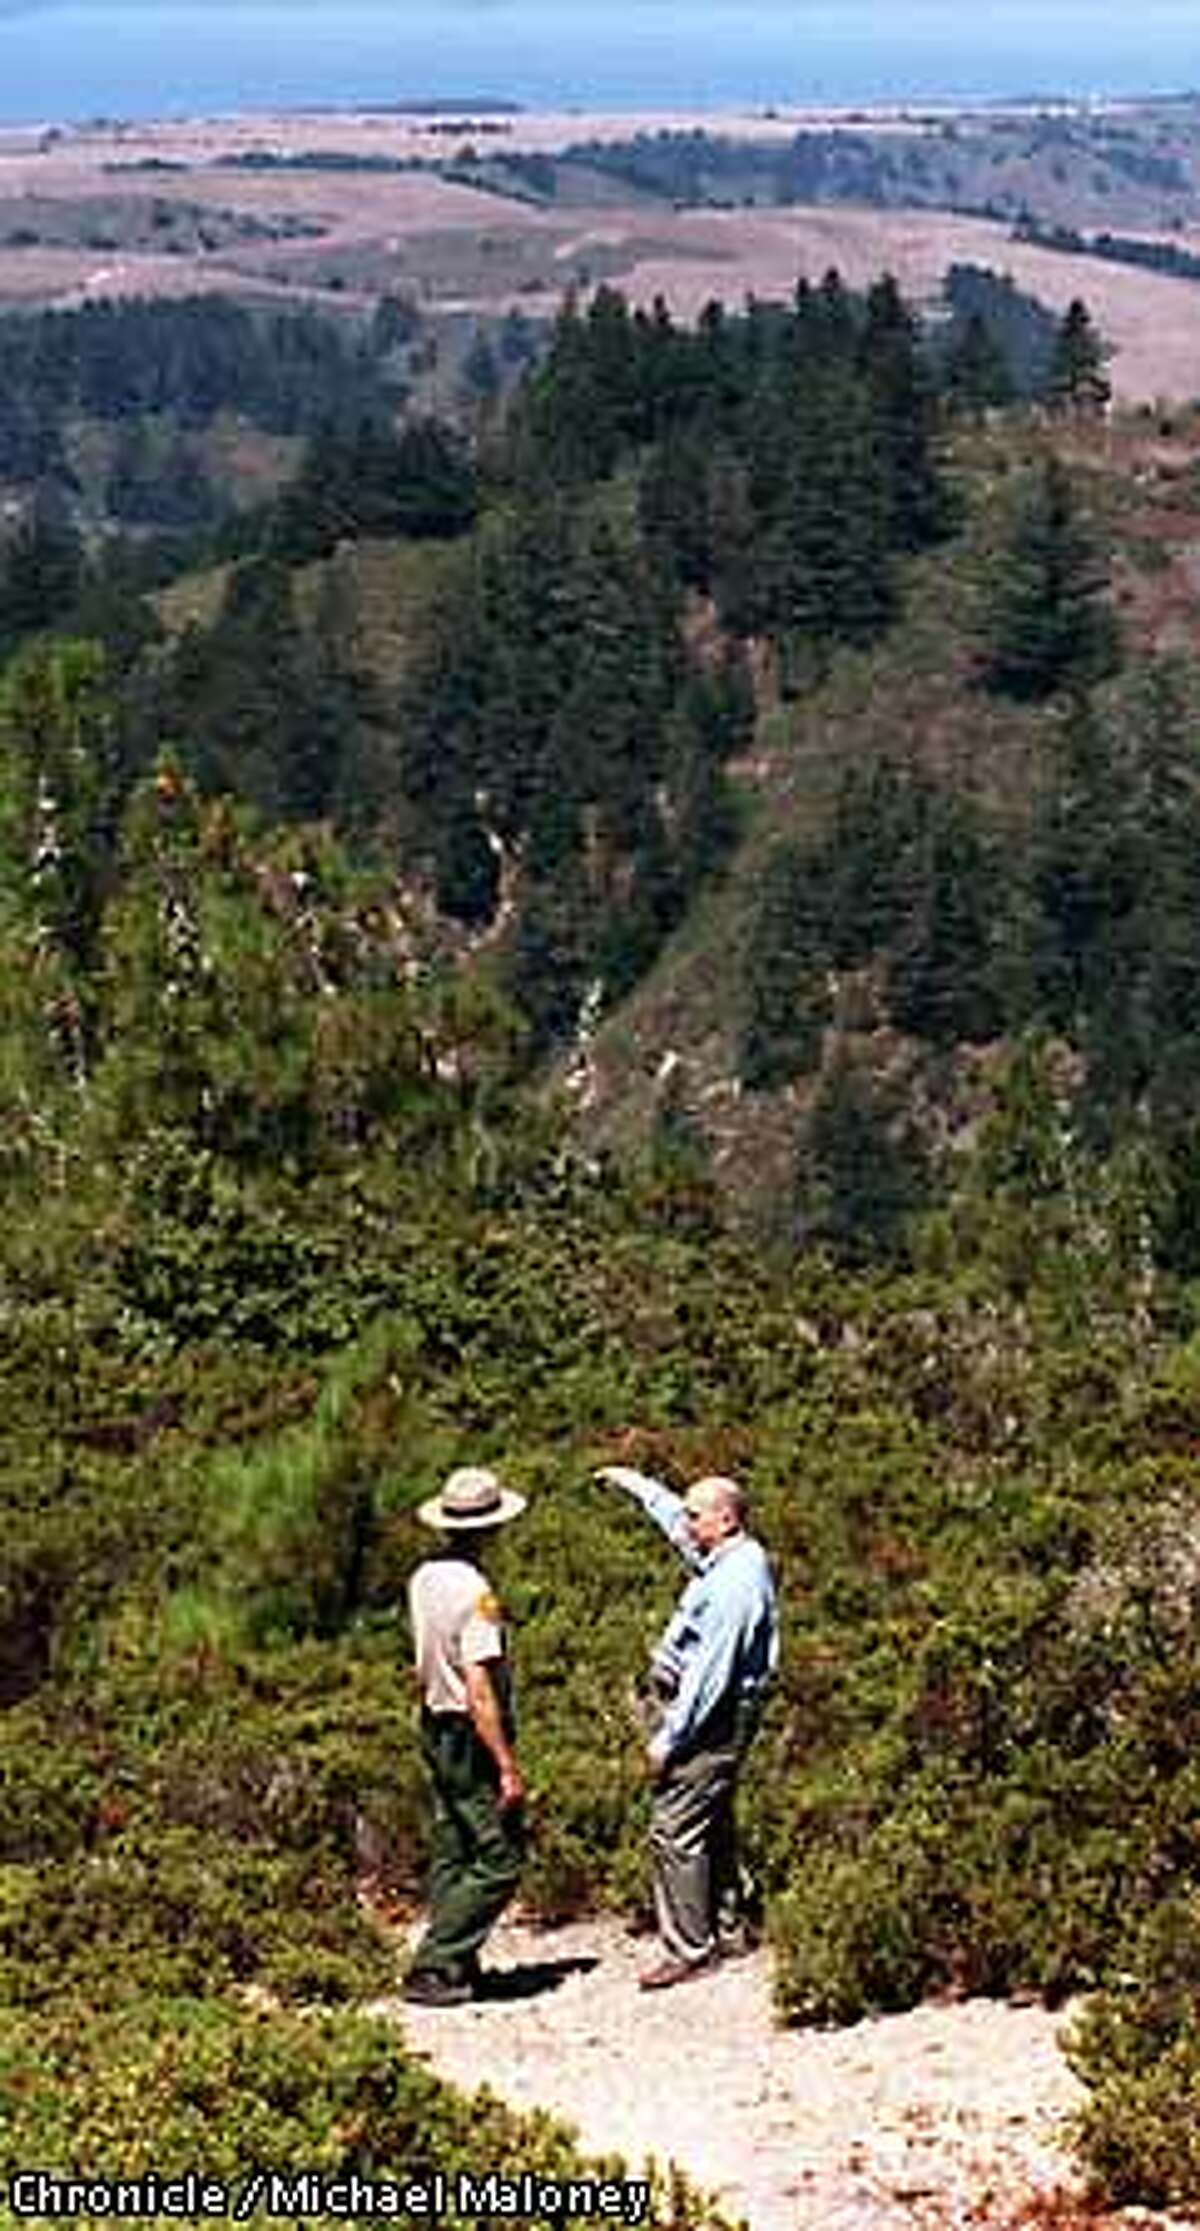 BIG BASIN 1/C/22AUG97/MN/MJM Landowner (right) points out the boundaries of the property the state bought from him to Big basin State Park Ranger Steve Oka. The 41 acre parcel connects the 17,000 acre Big Basin Redwoods State Park with the 3,986 acre Ano Nuevo State Reserve. Photo by Michael Maloney